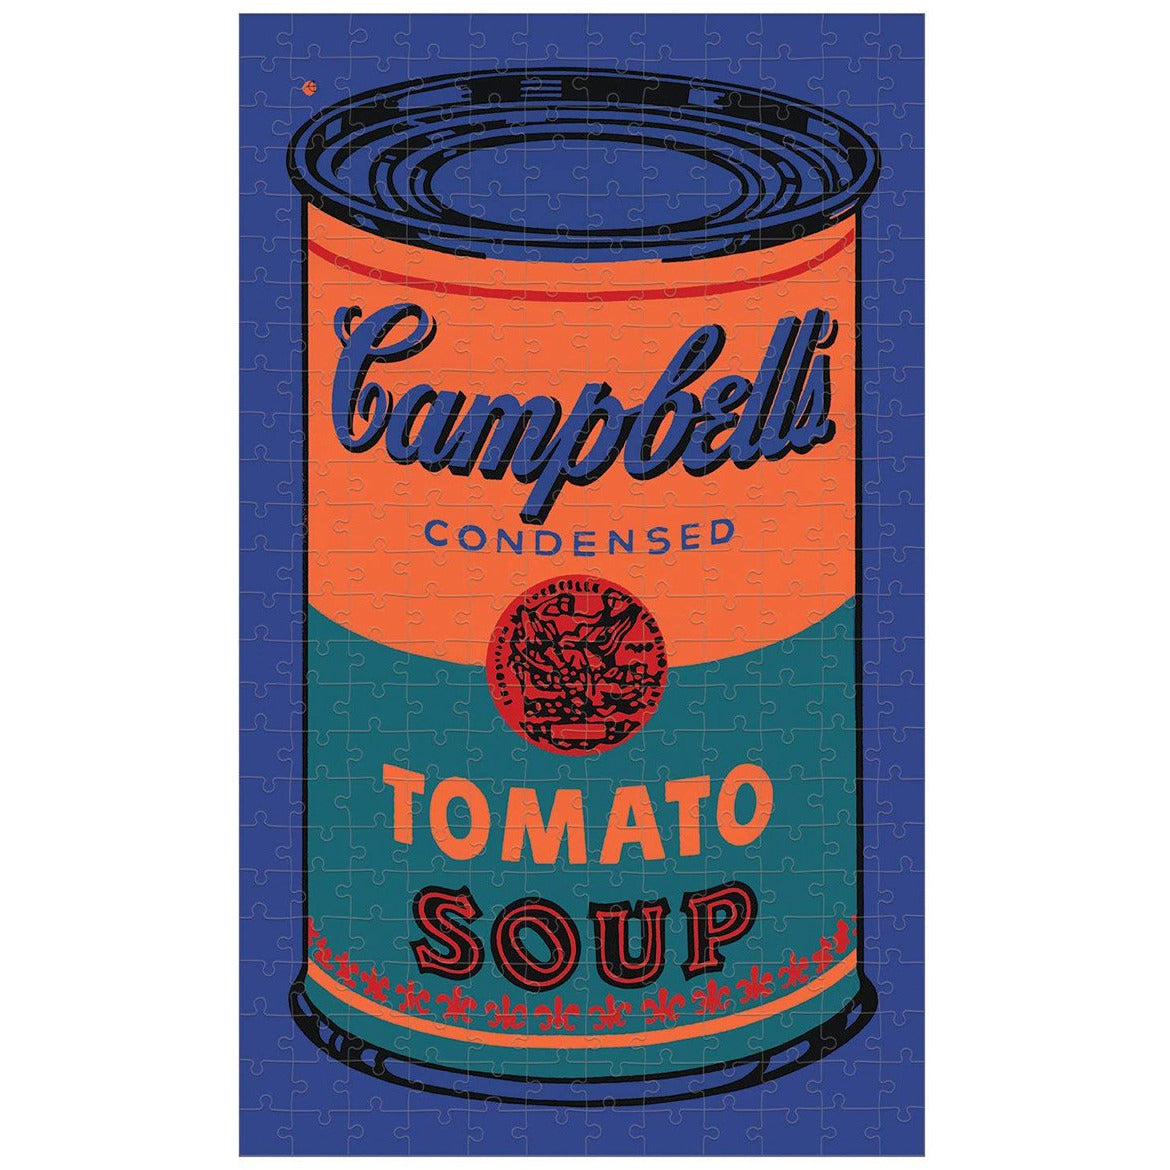 Andy Warhol 'Tomato Soup' Soup Can 300 Piece Puzzle in Orange